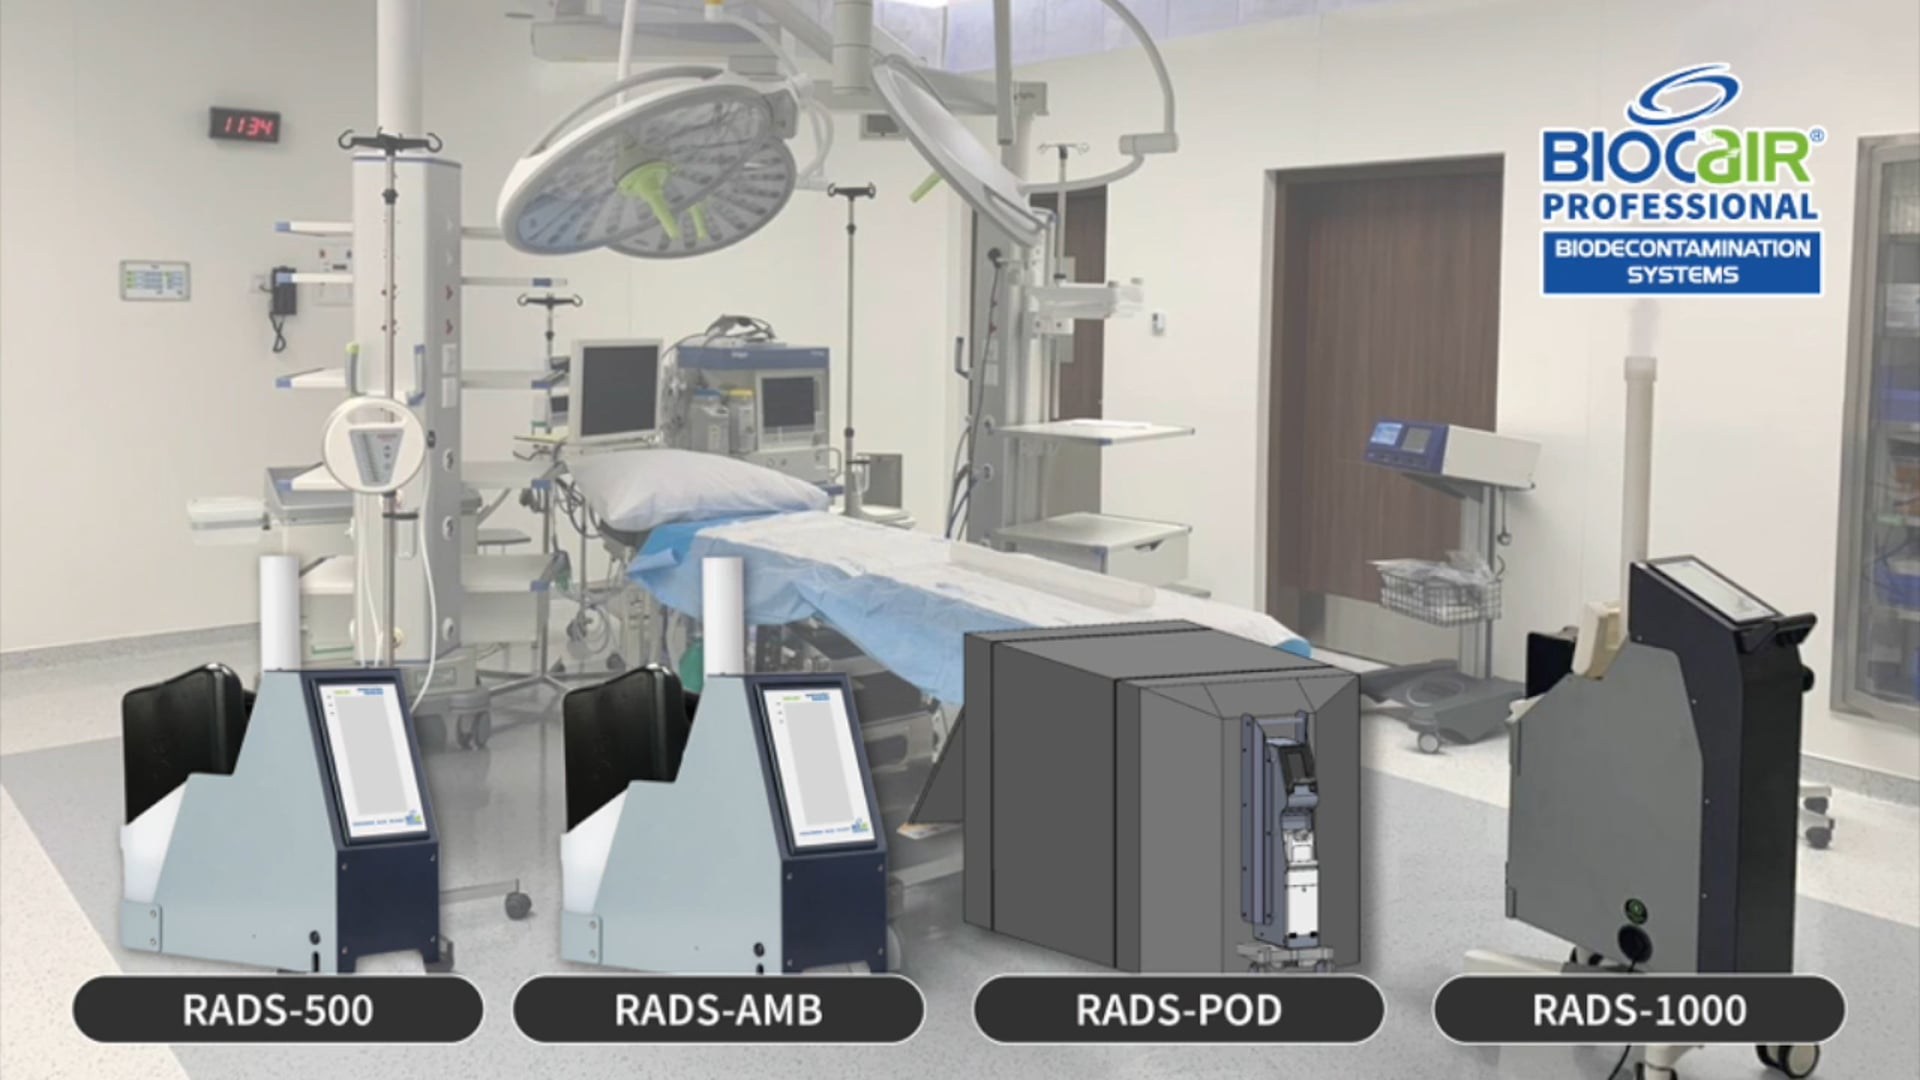 BioCair RADS-500 Information Video with demonstration